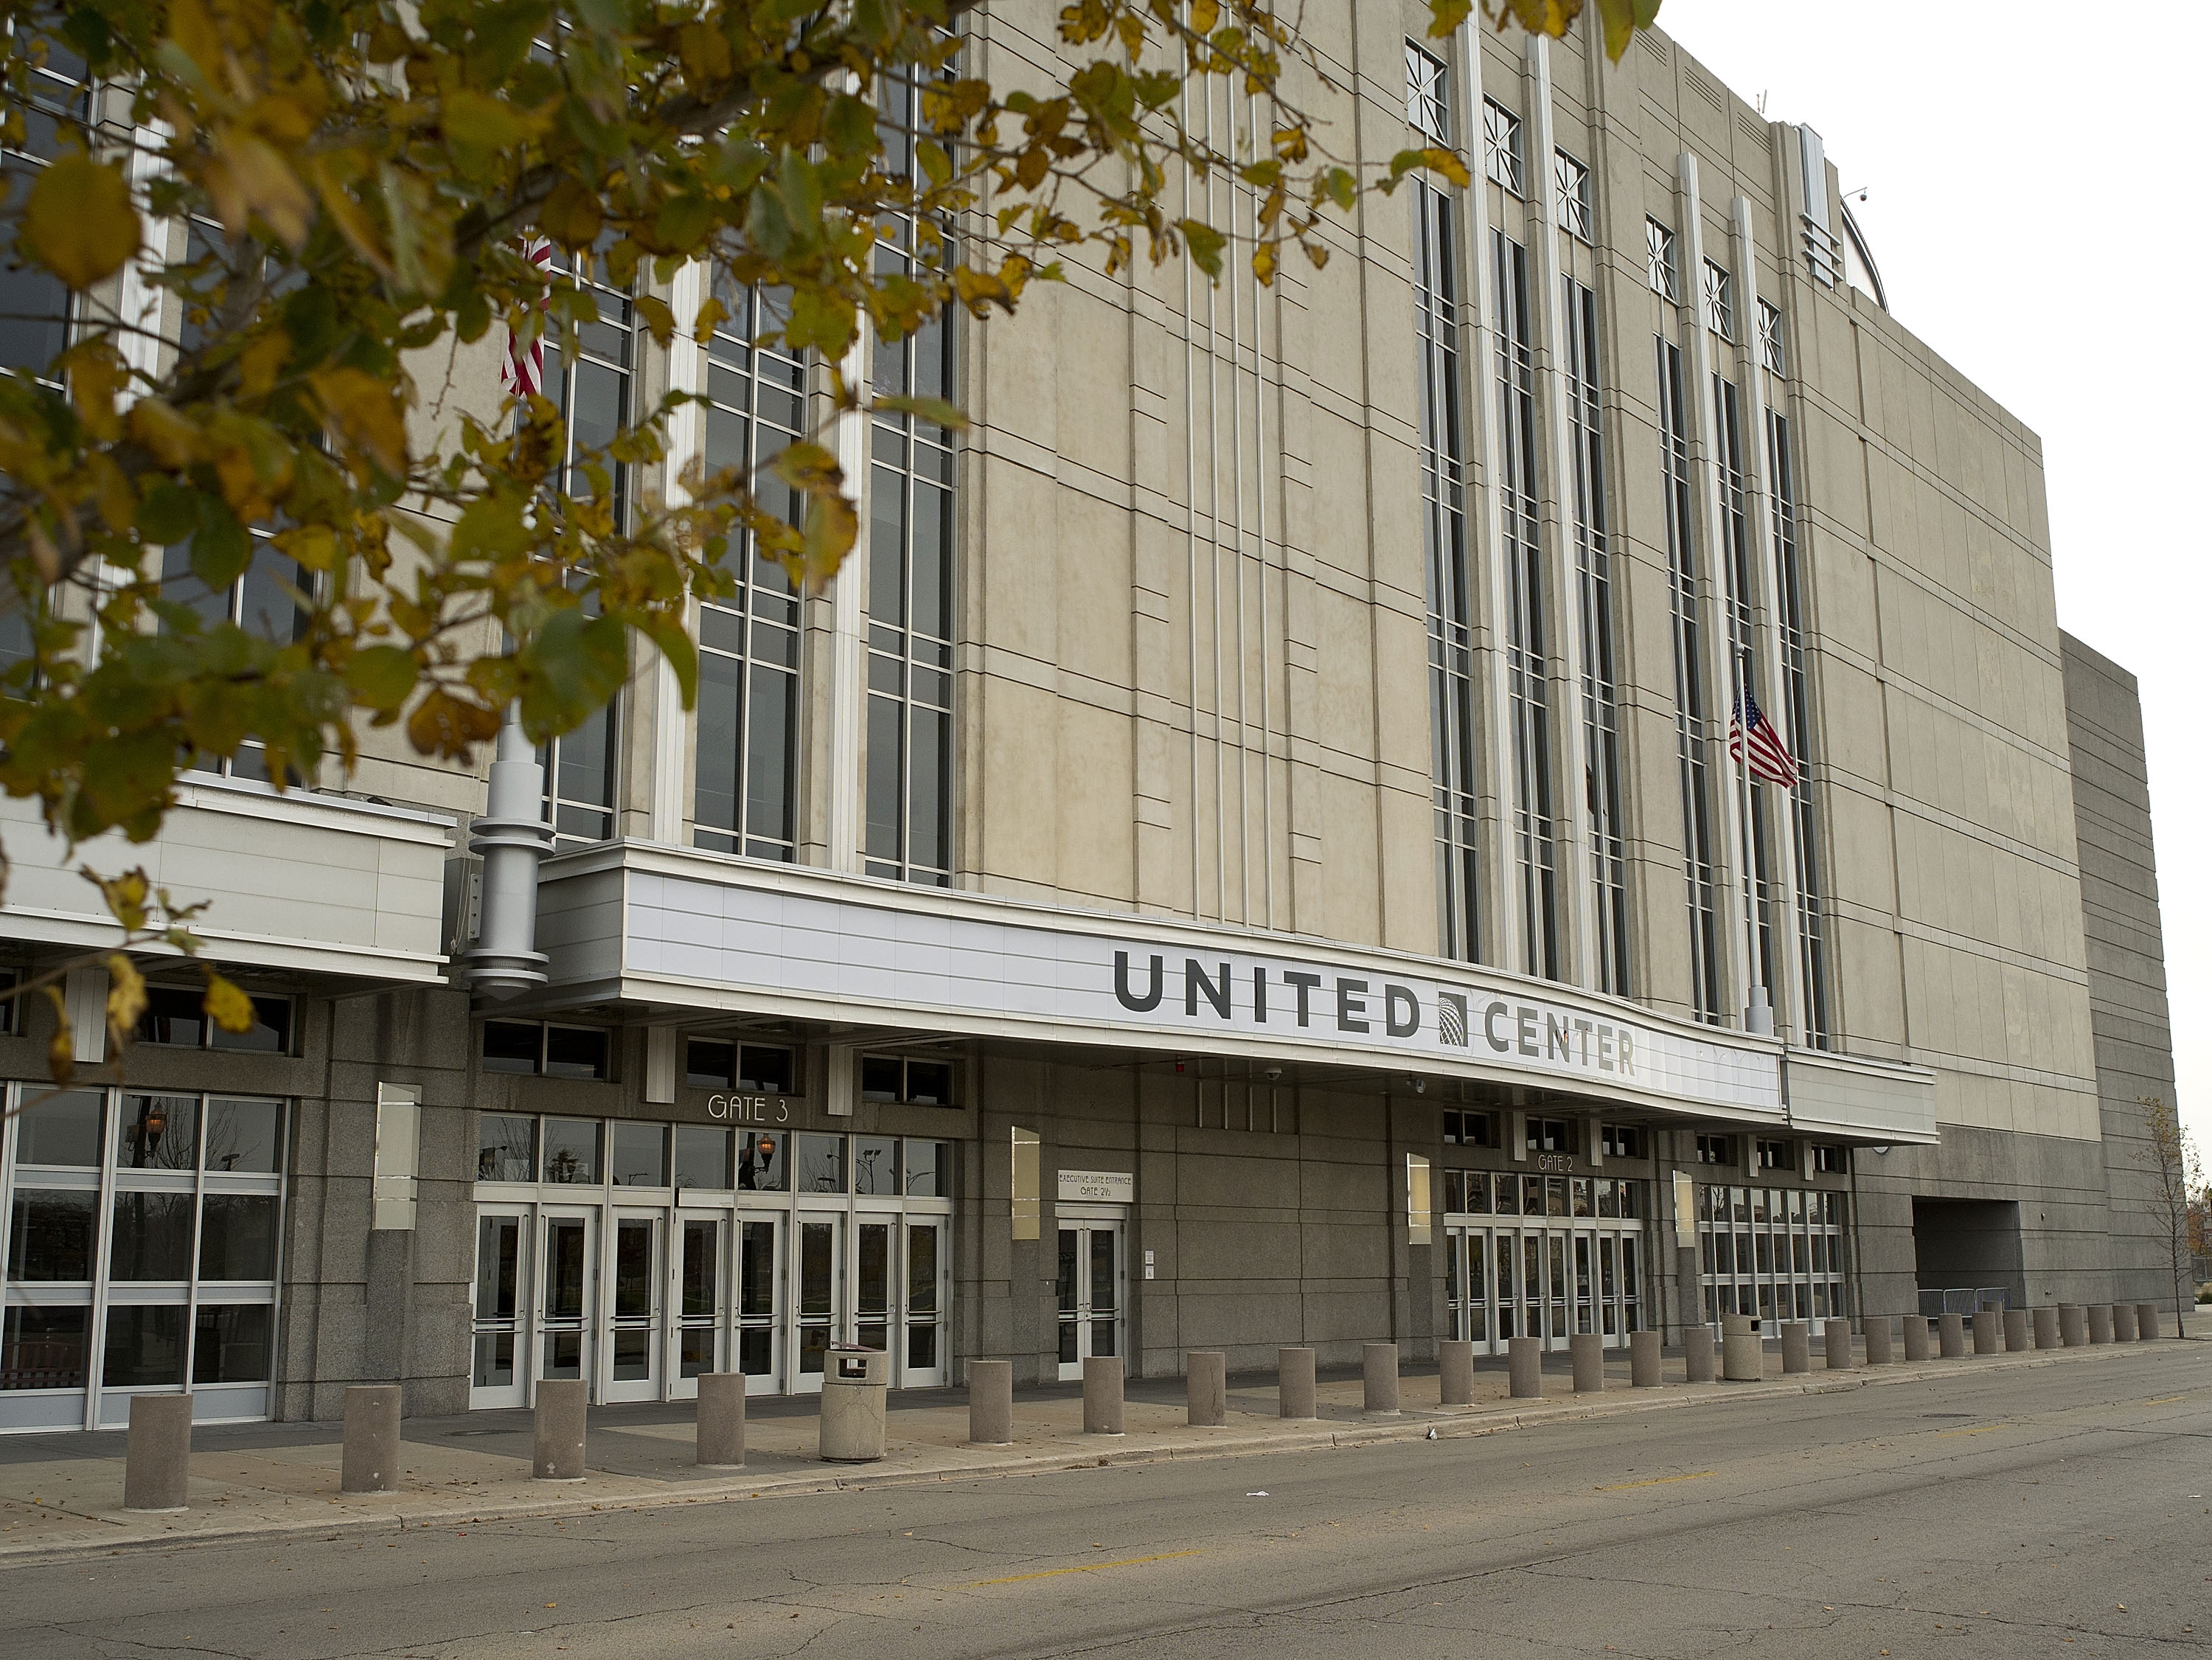 The United Center.